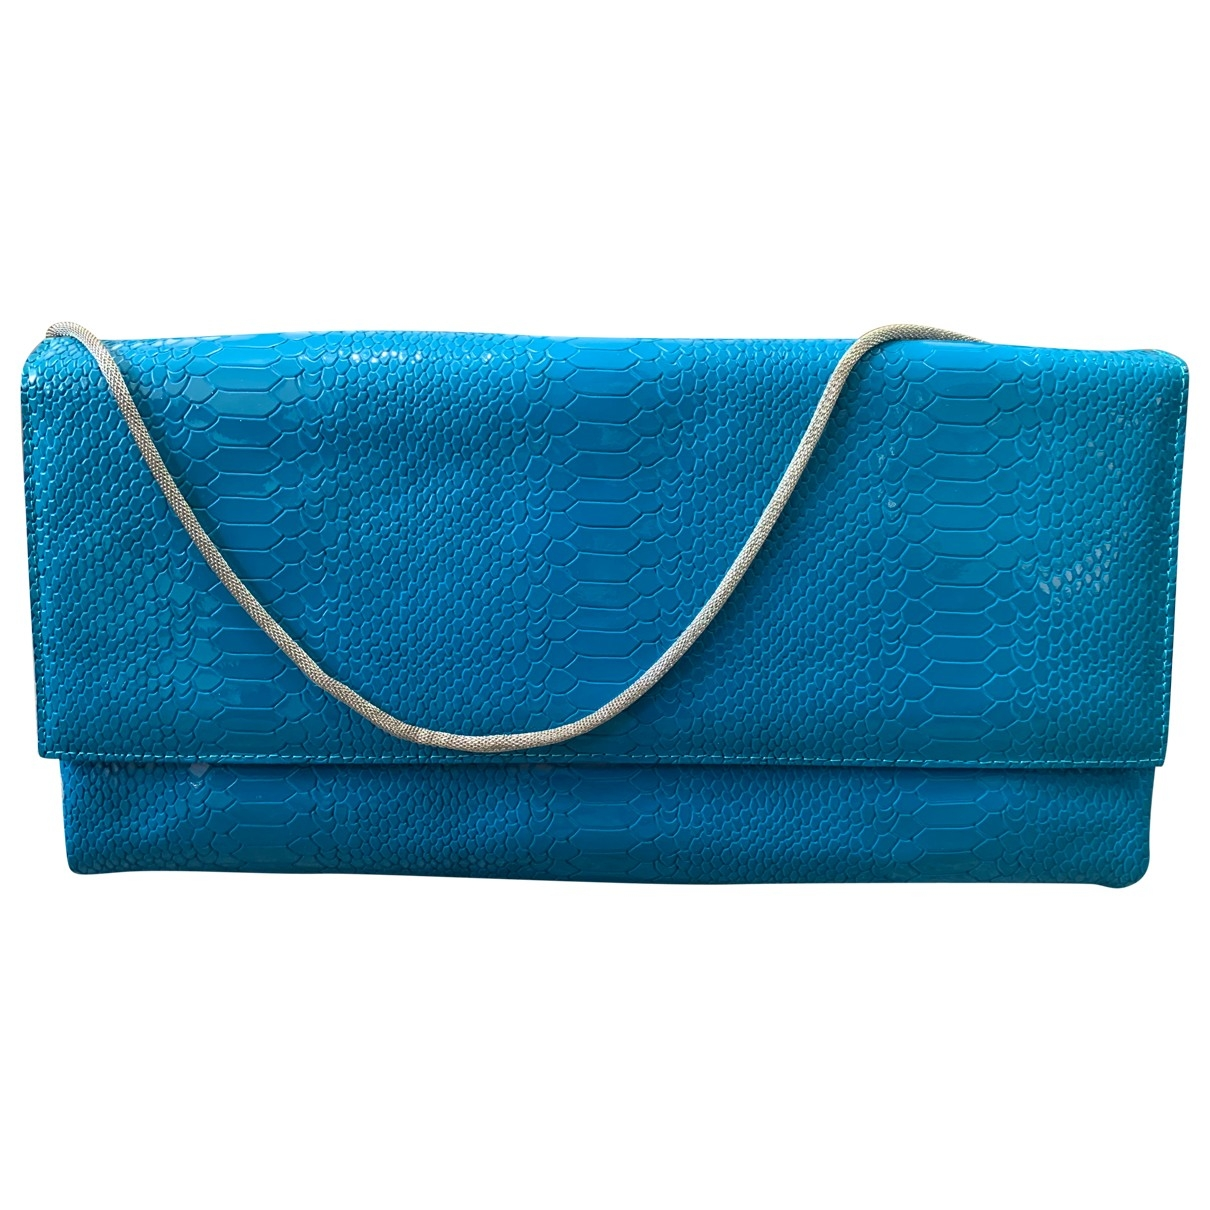 Casadei \N Clutch in  Blau Leder